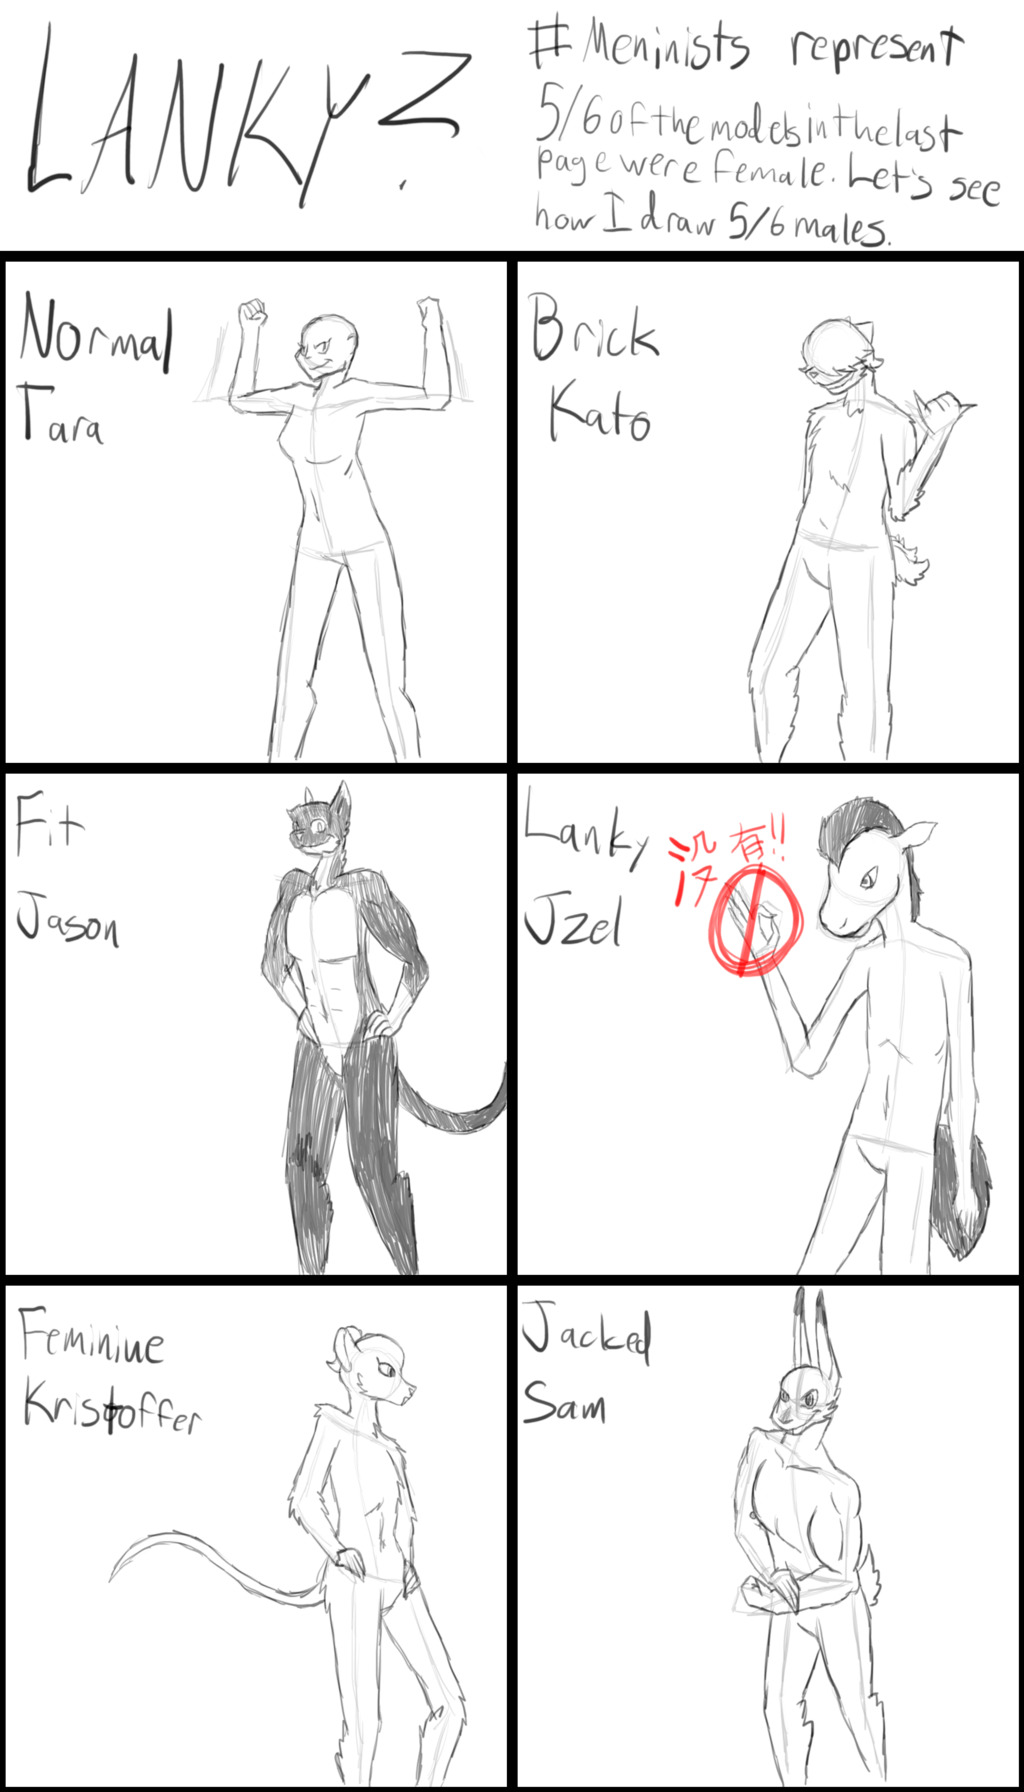 Most recent image: Critique thread: Lanky? Continued